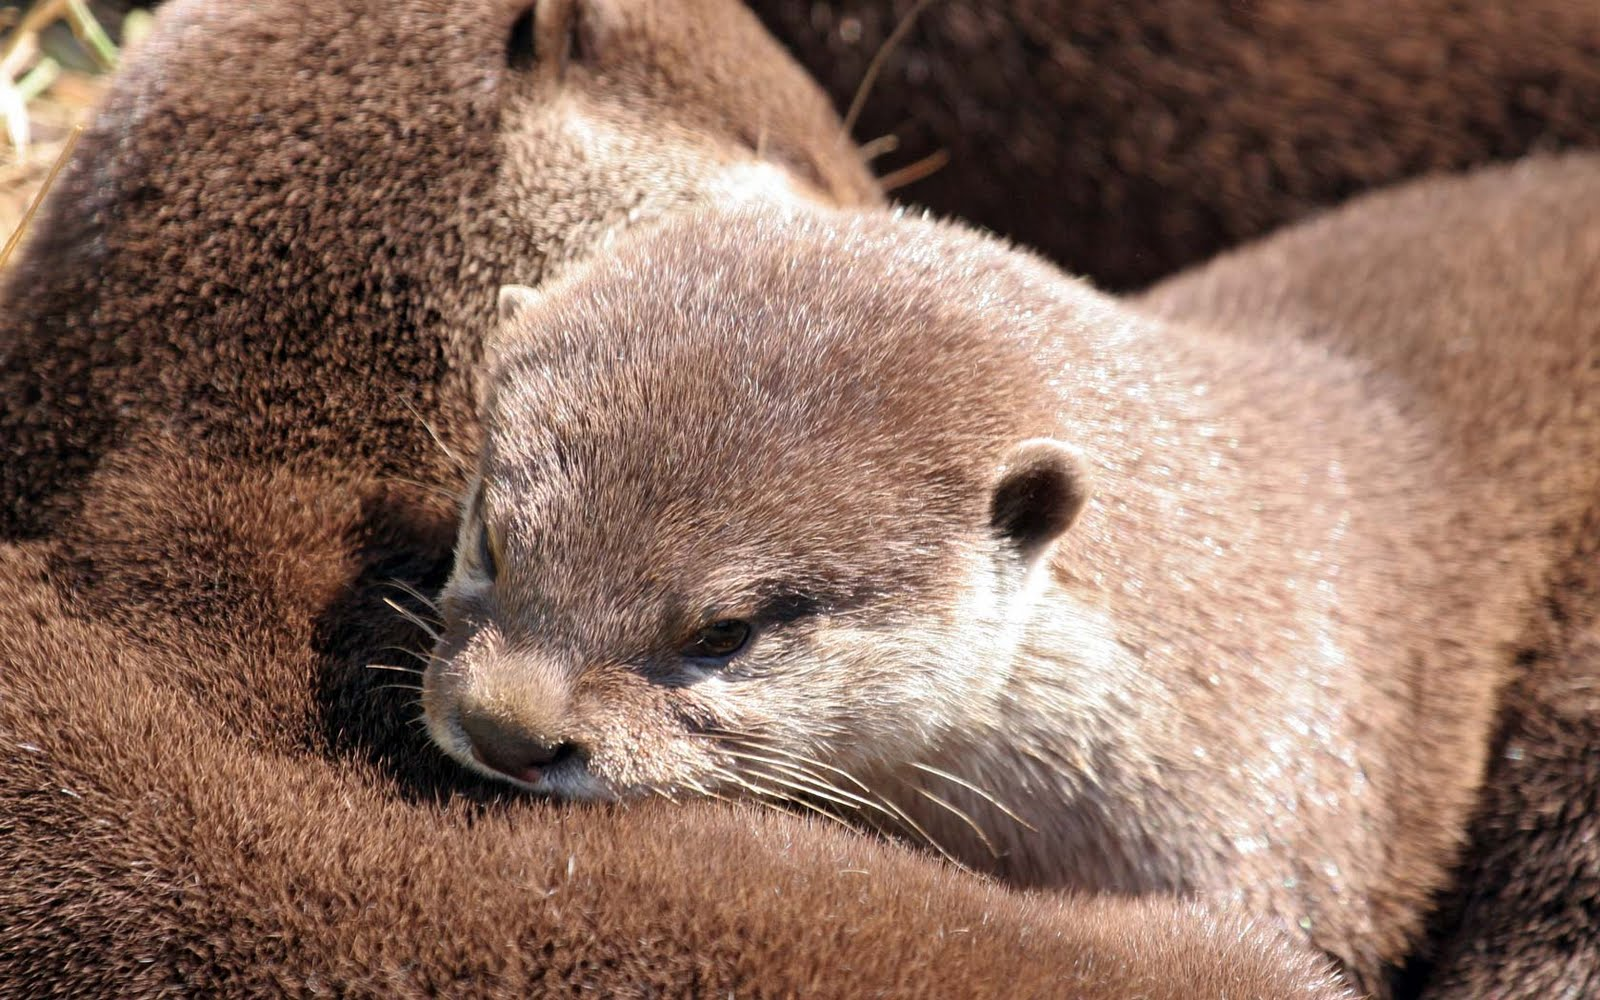 Very Sweet and Cute Animals Funny Otter wallpaper 1600x1000